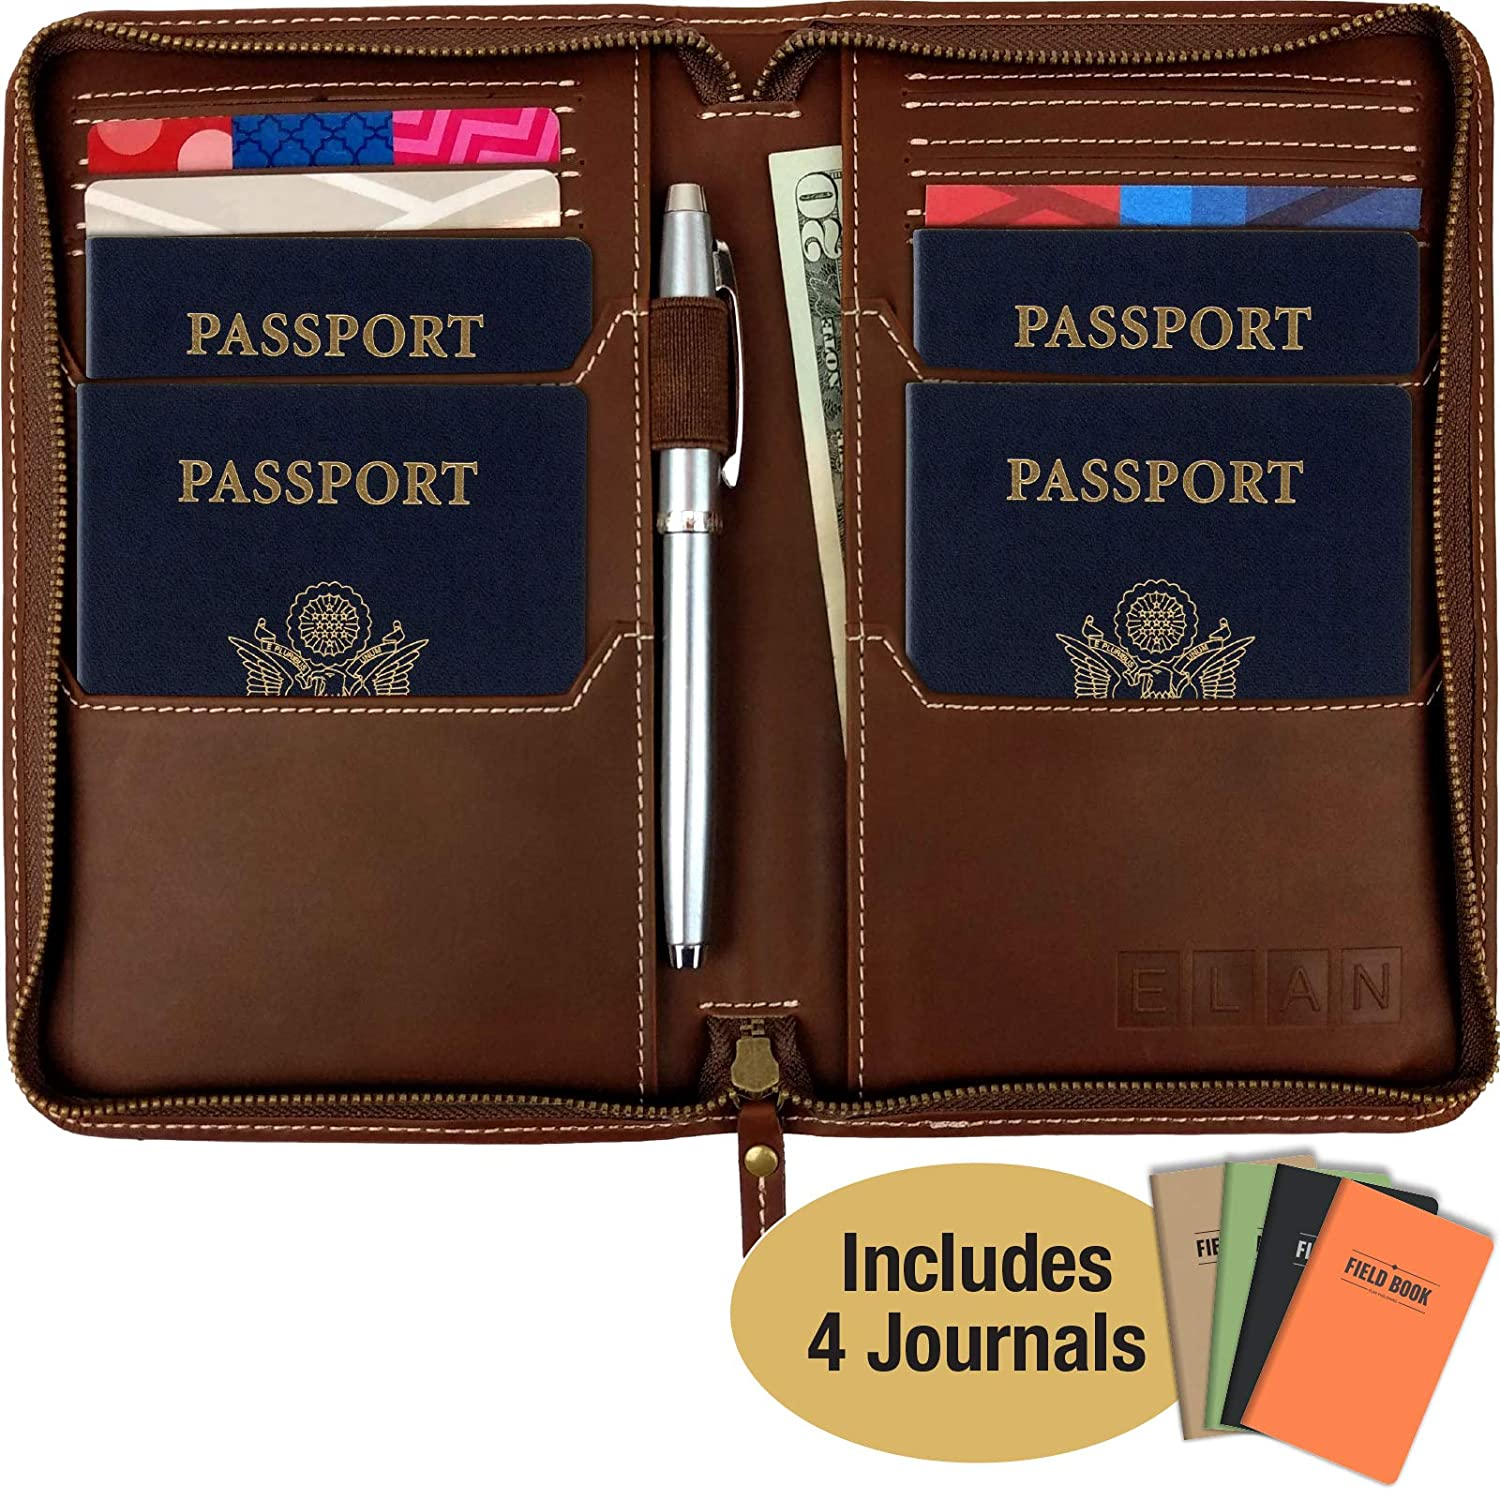 f9304c10a Leather Travel Wallet   Passport Holder  Passport Cover holds 4 Passports